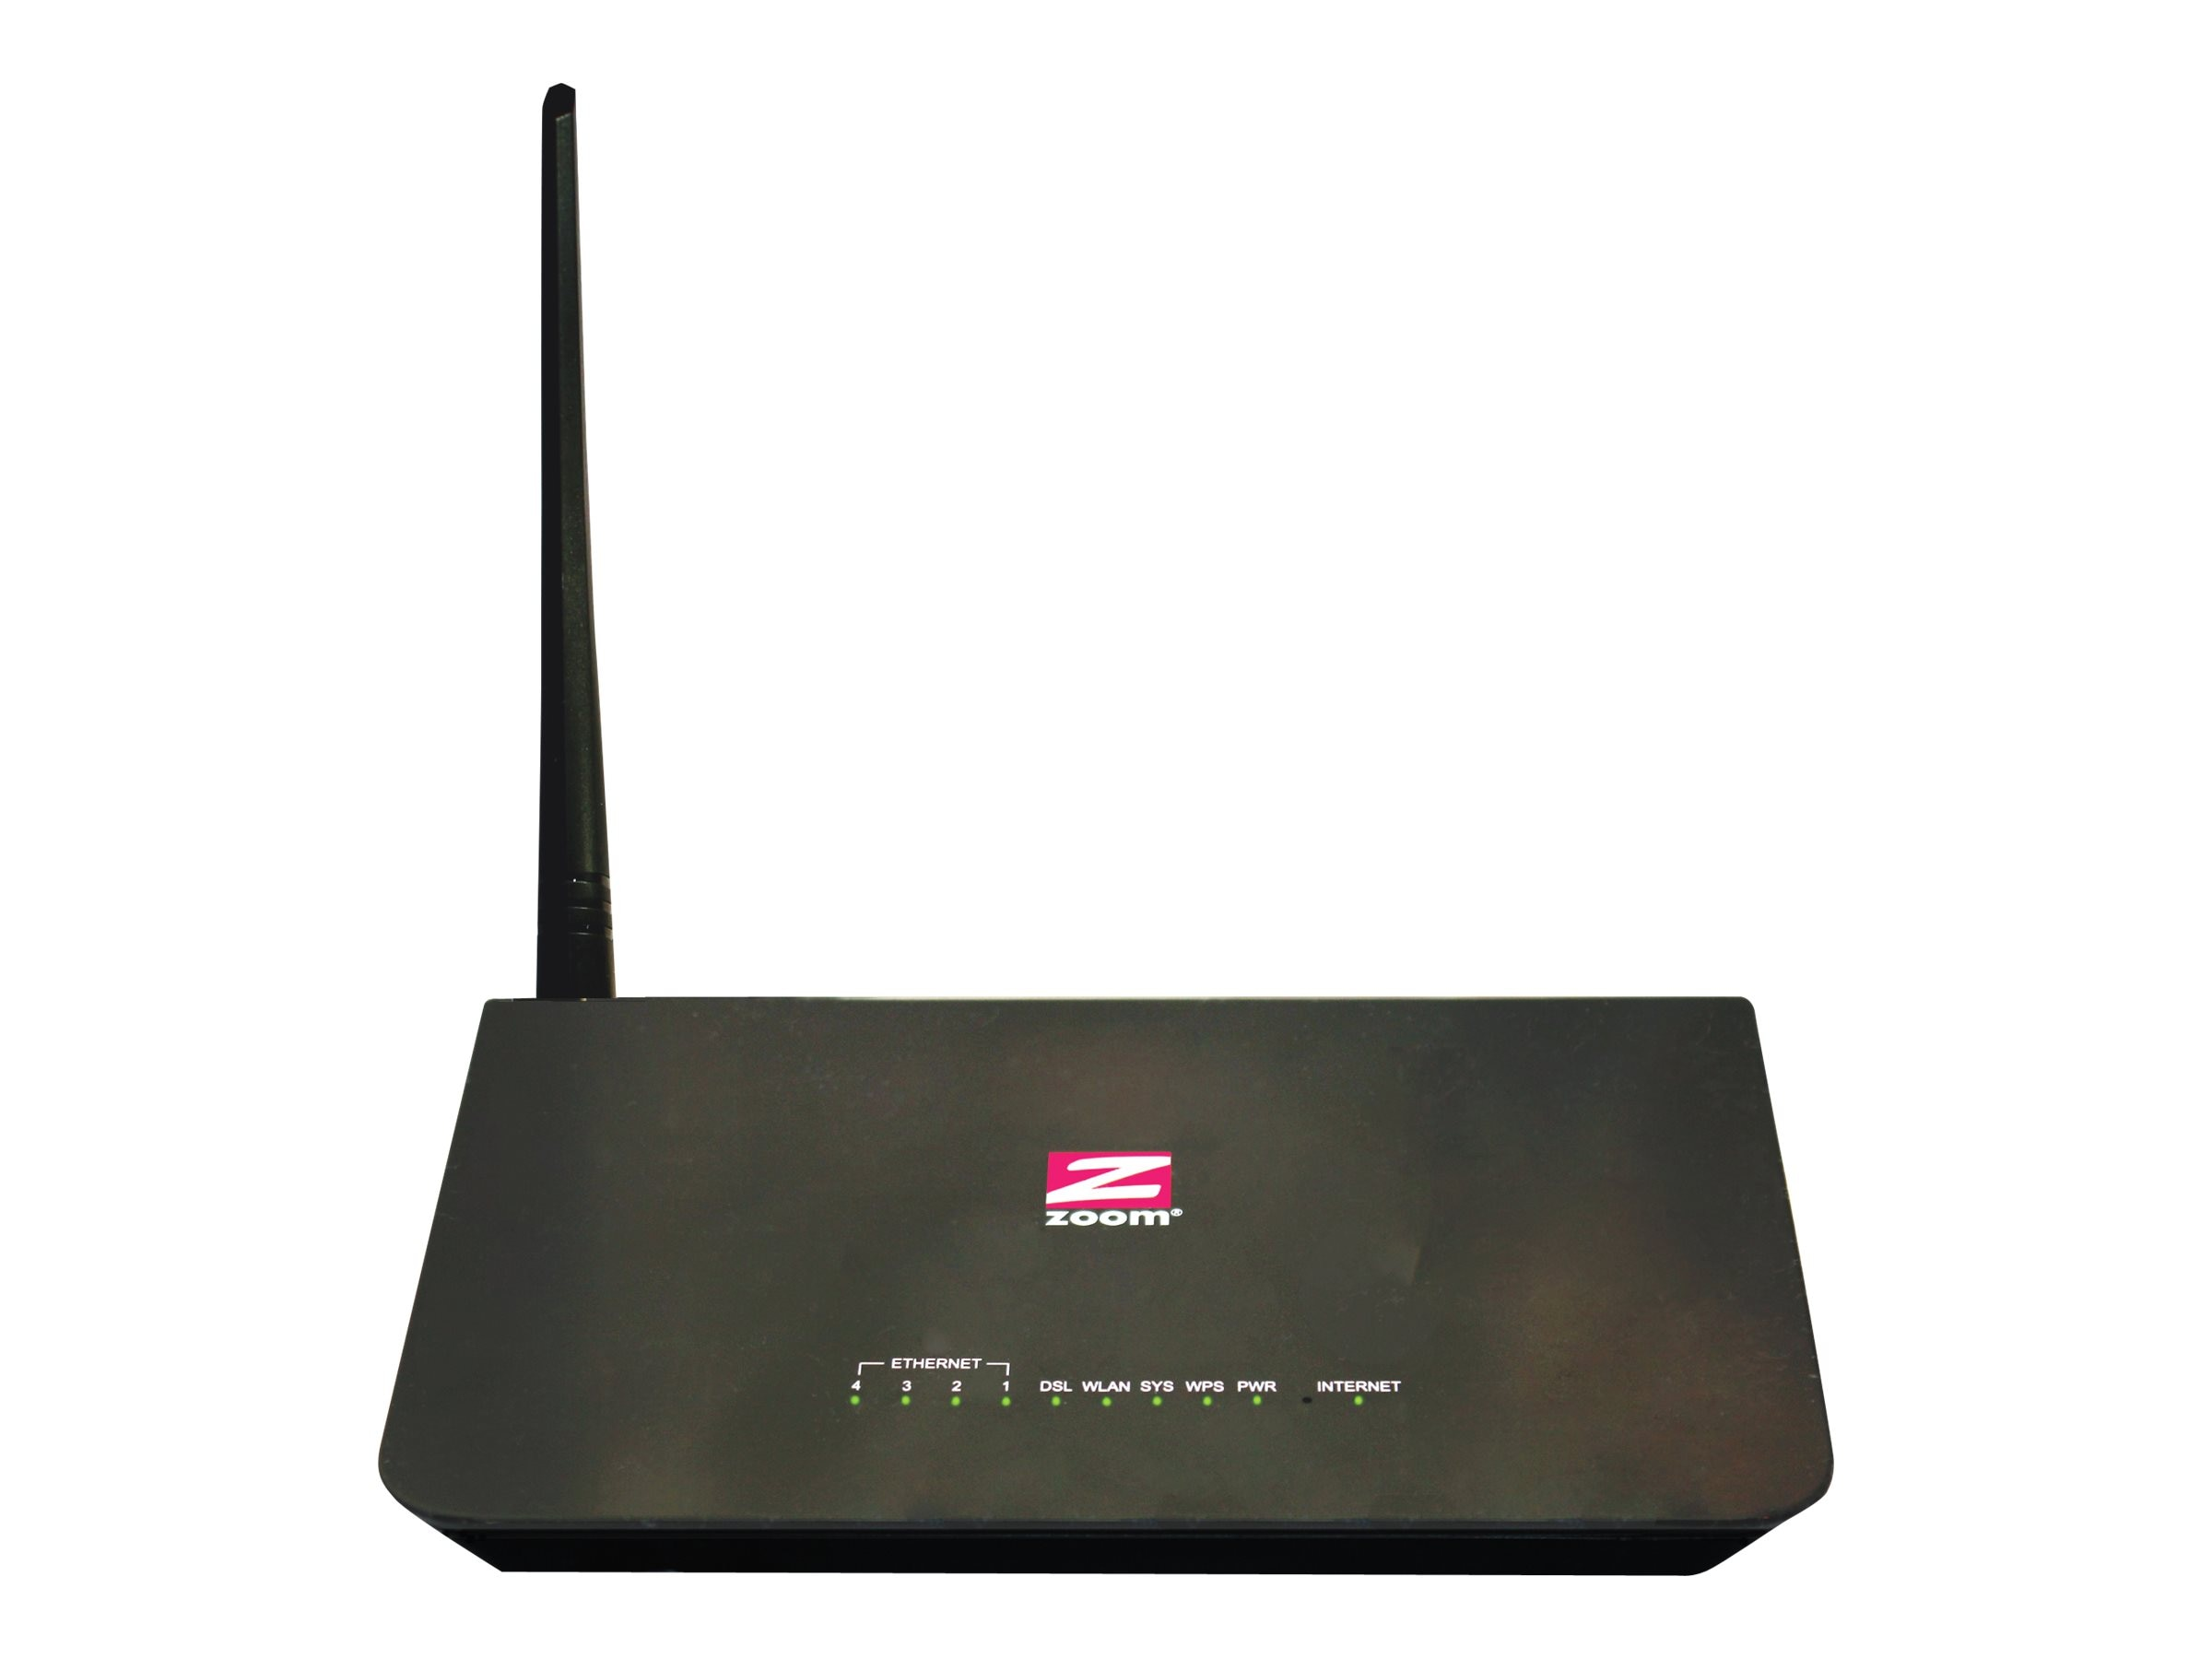 Zoom ADSL 5792 Modem WiFi Router, 5792-00-00, 17780664, DSL/Cable Modems